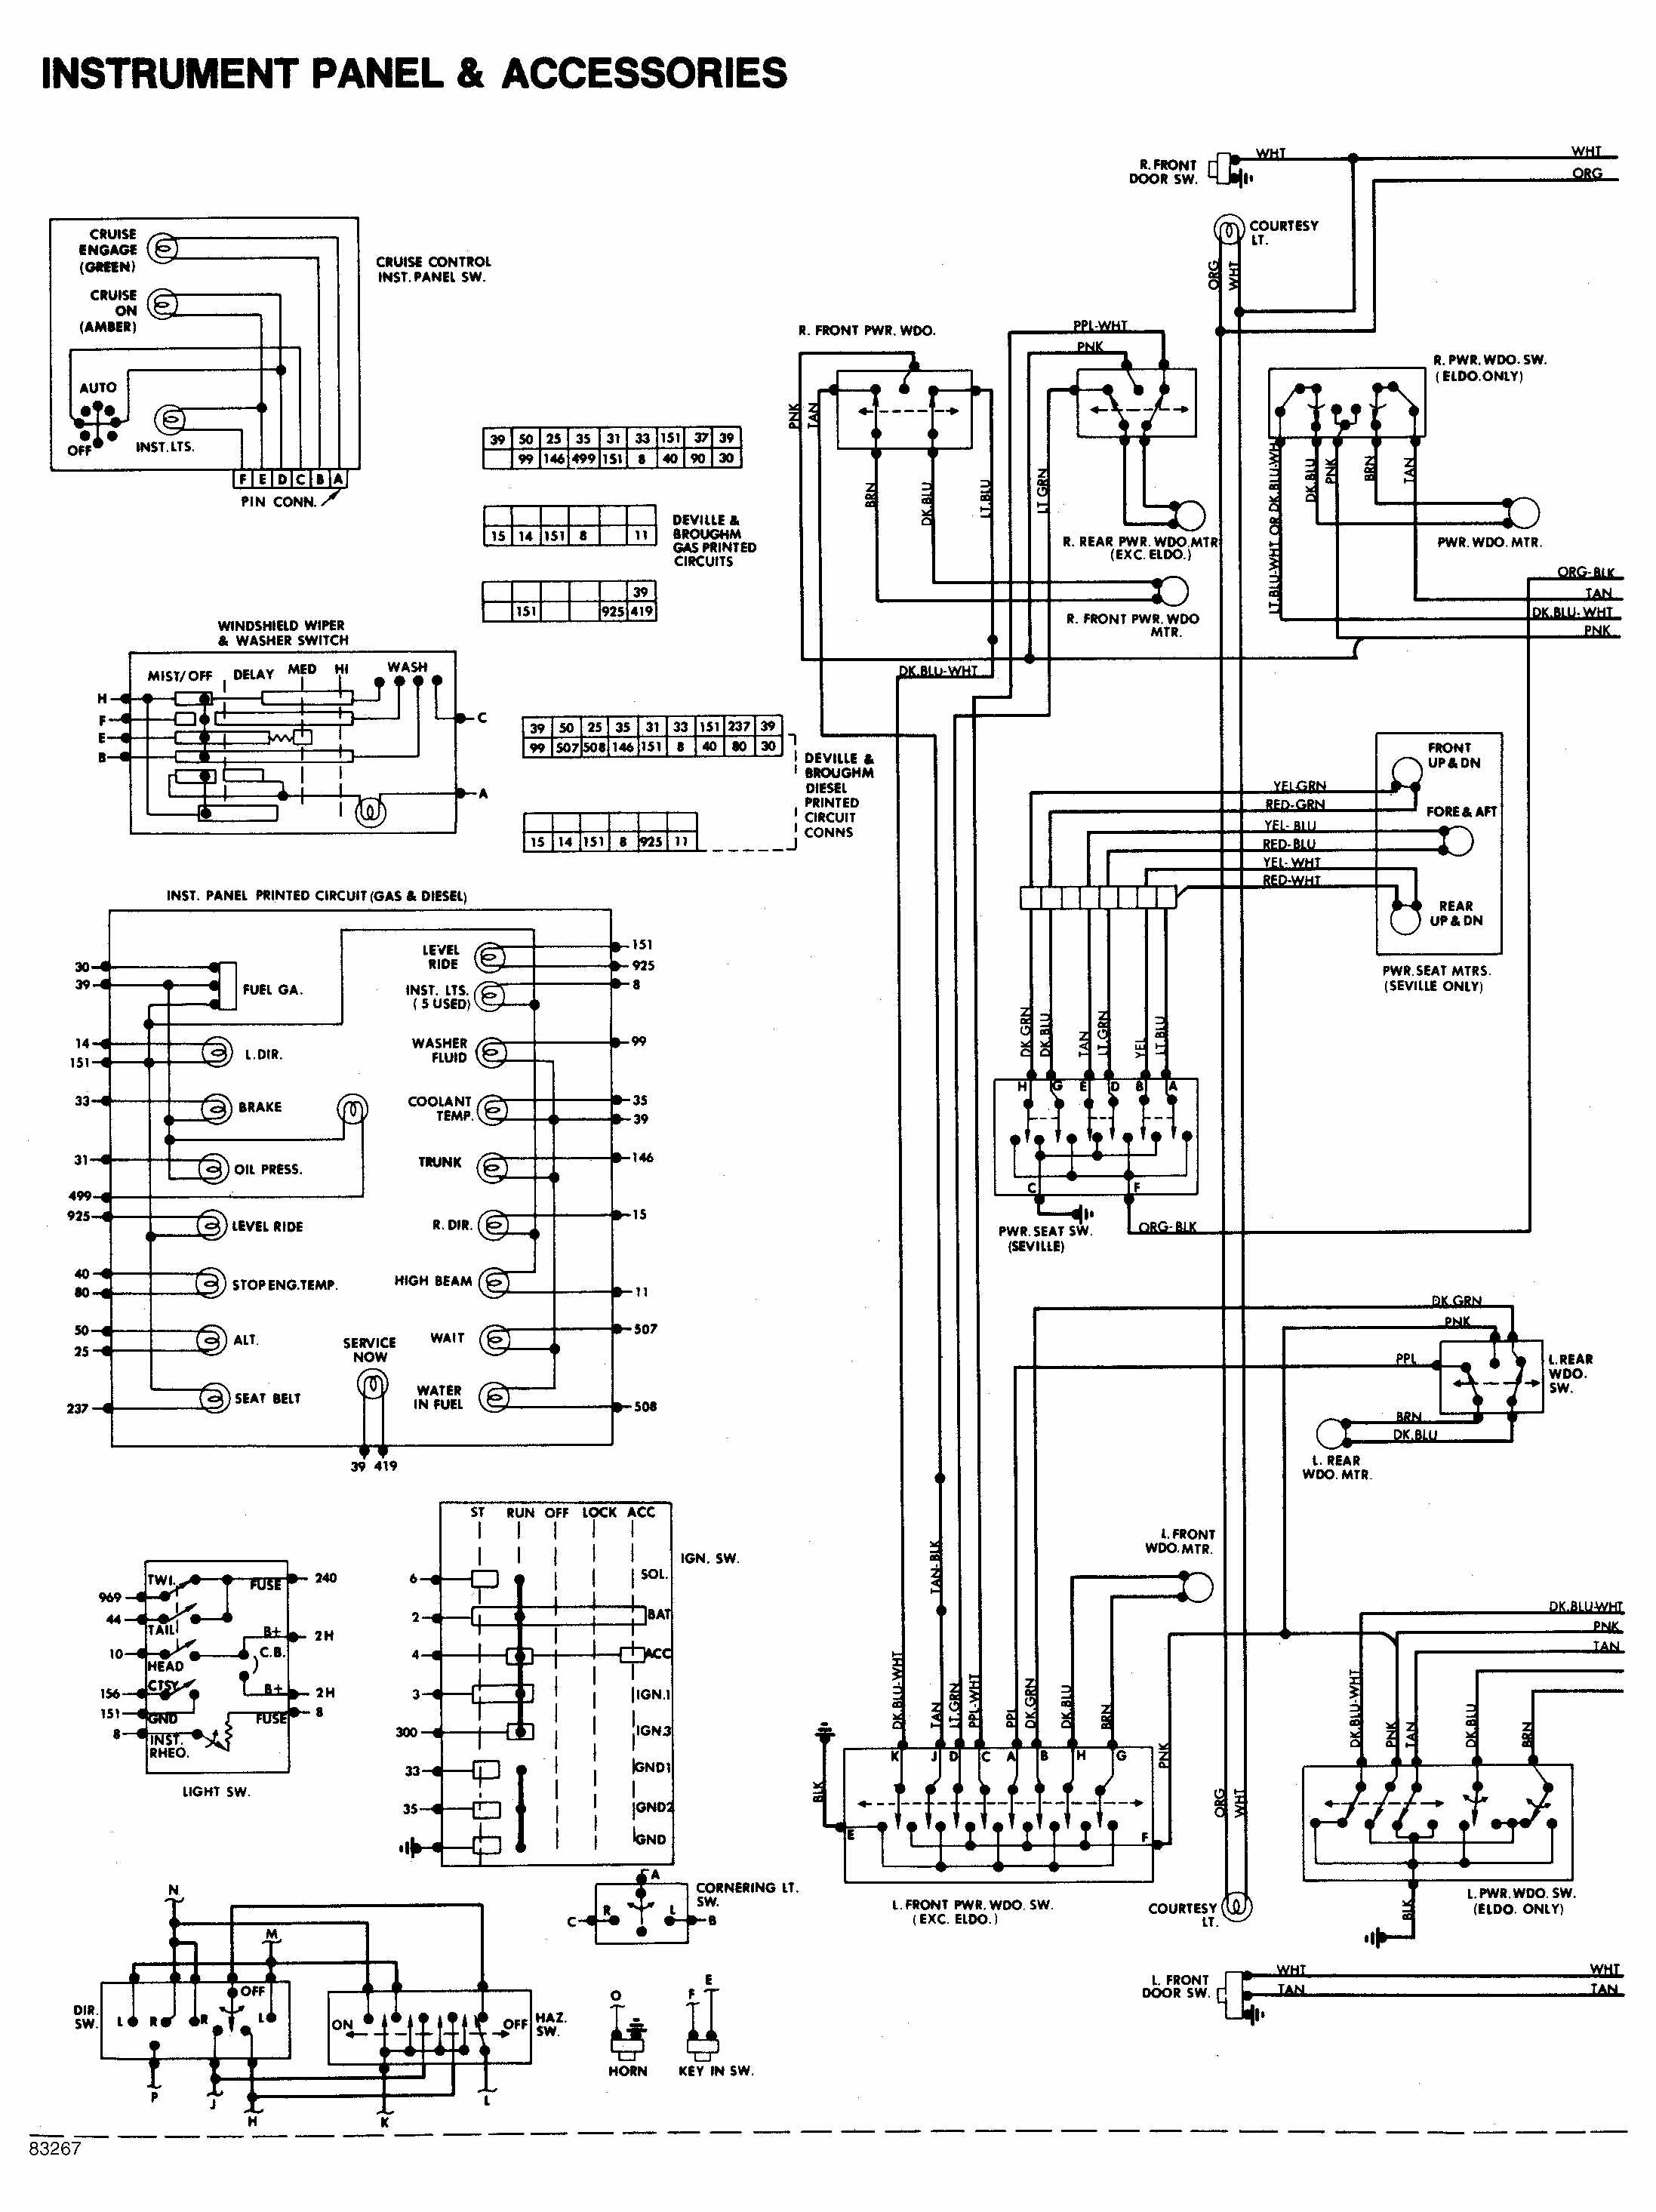 instrument panel and accessories wiring diagram of 1984 cadillac deville gm wiring diagrams 2003 chevy 3500 abs wiring diagrams \u2022 wiring Jetta Transmission Valve Body at nearapp.co